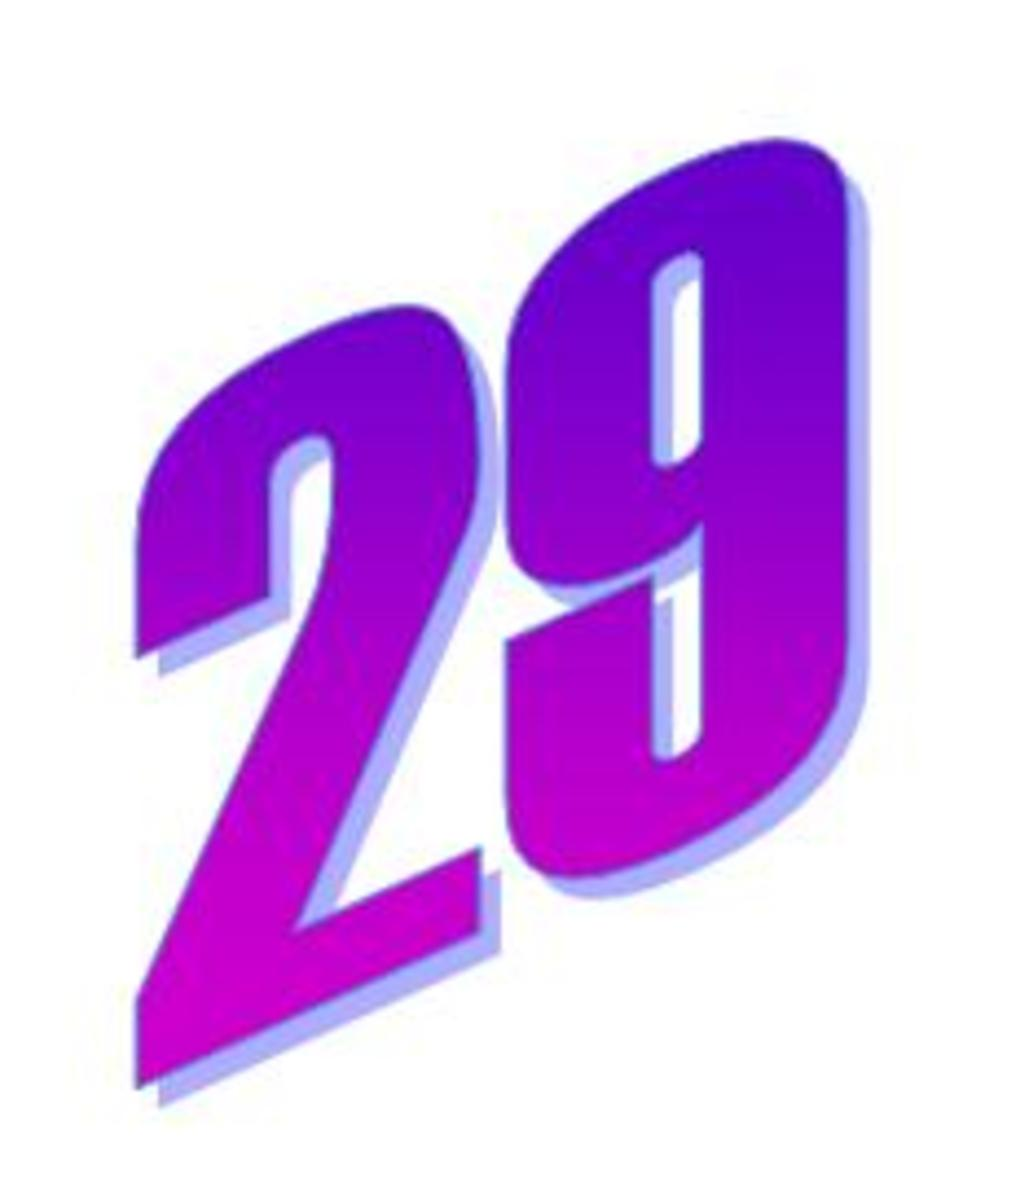 facts-about-the-number-29-the-importance-of-twenty-nine-in-math-music-and-religion